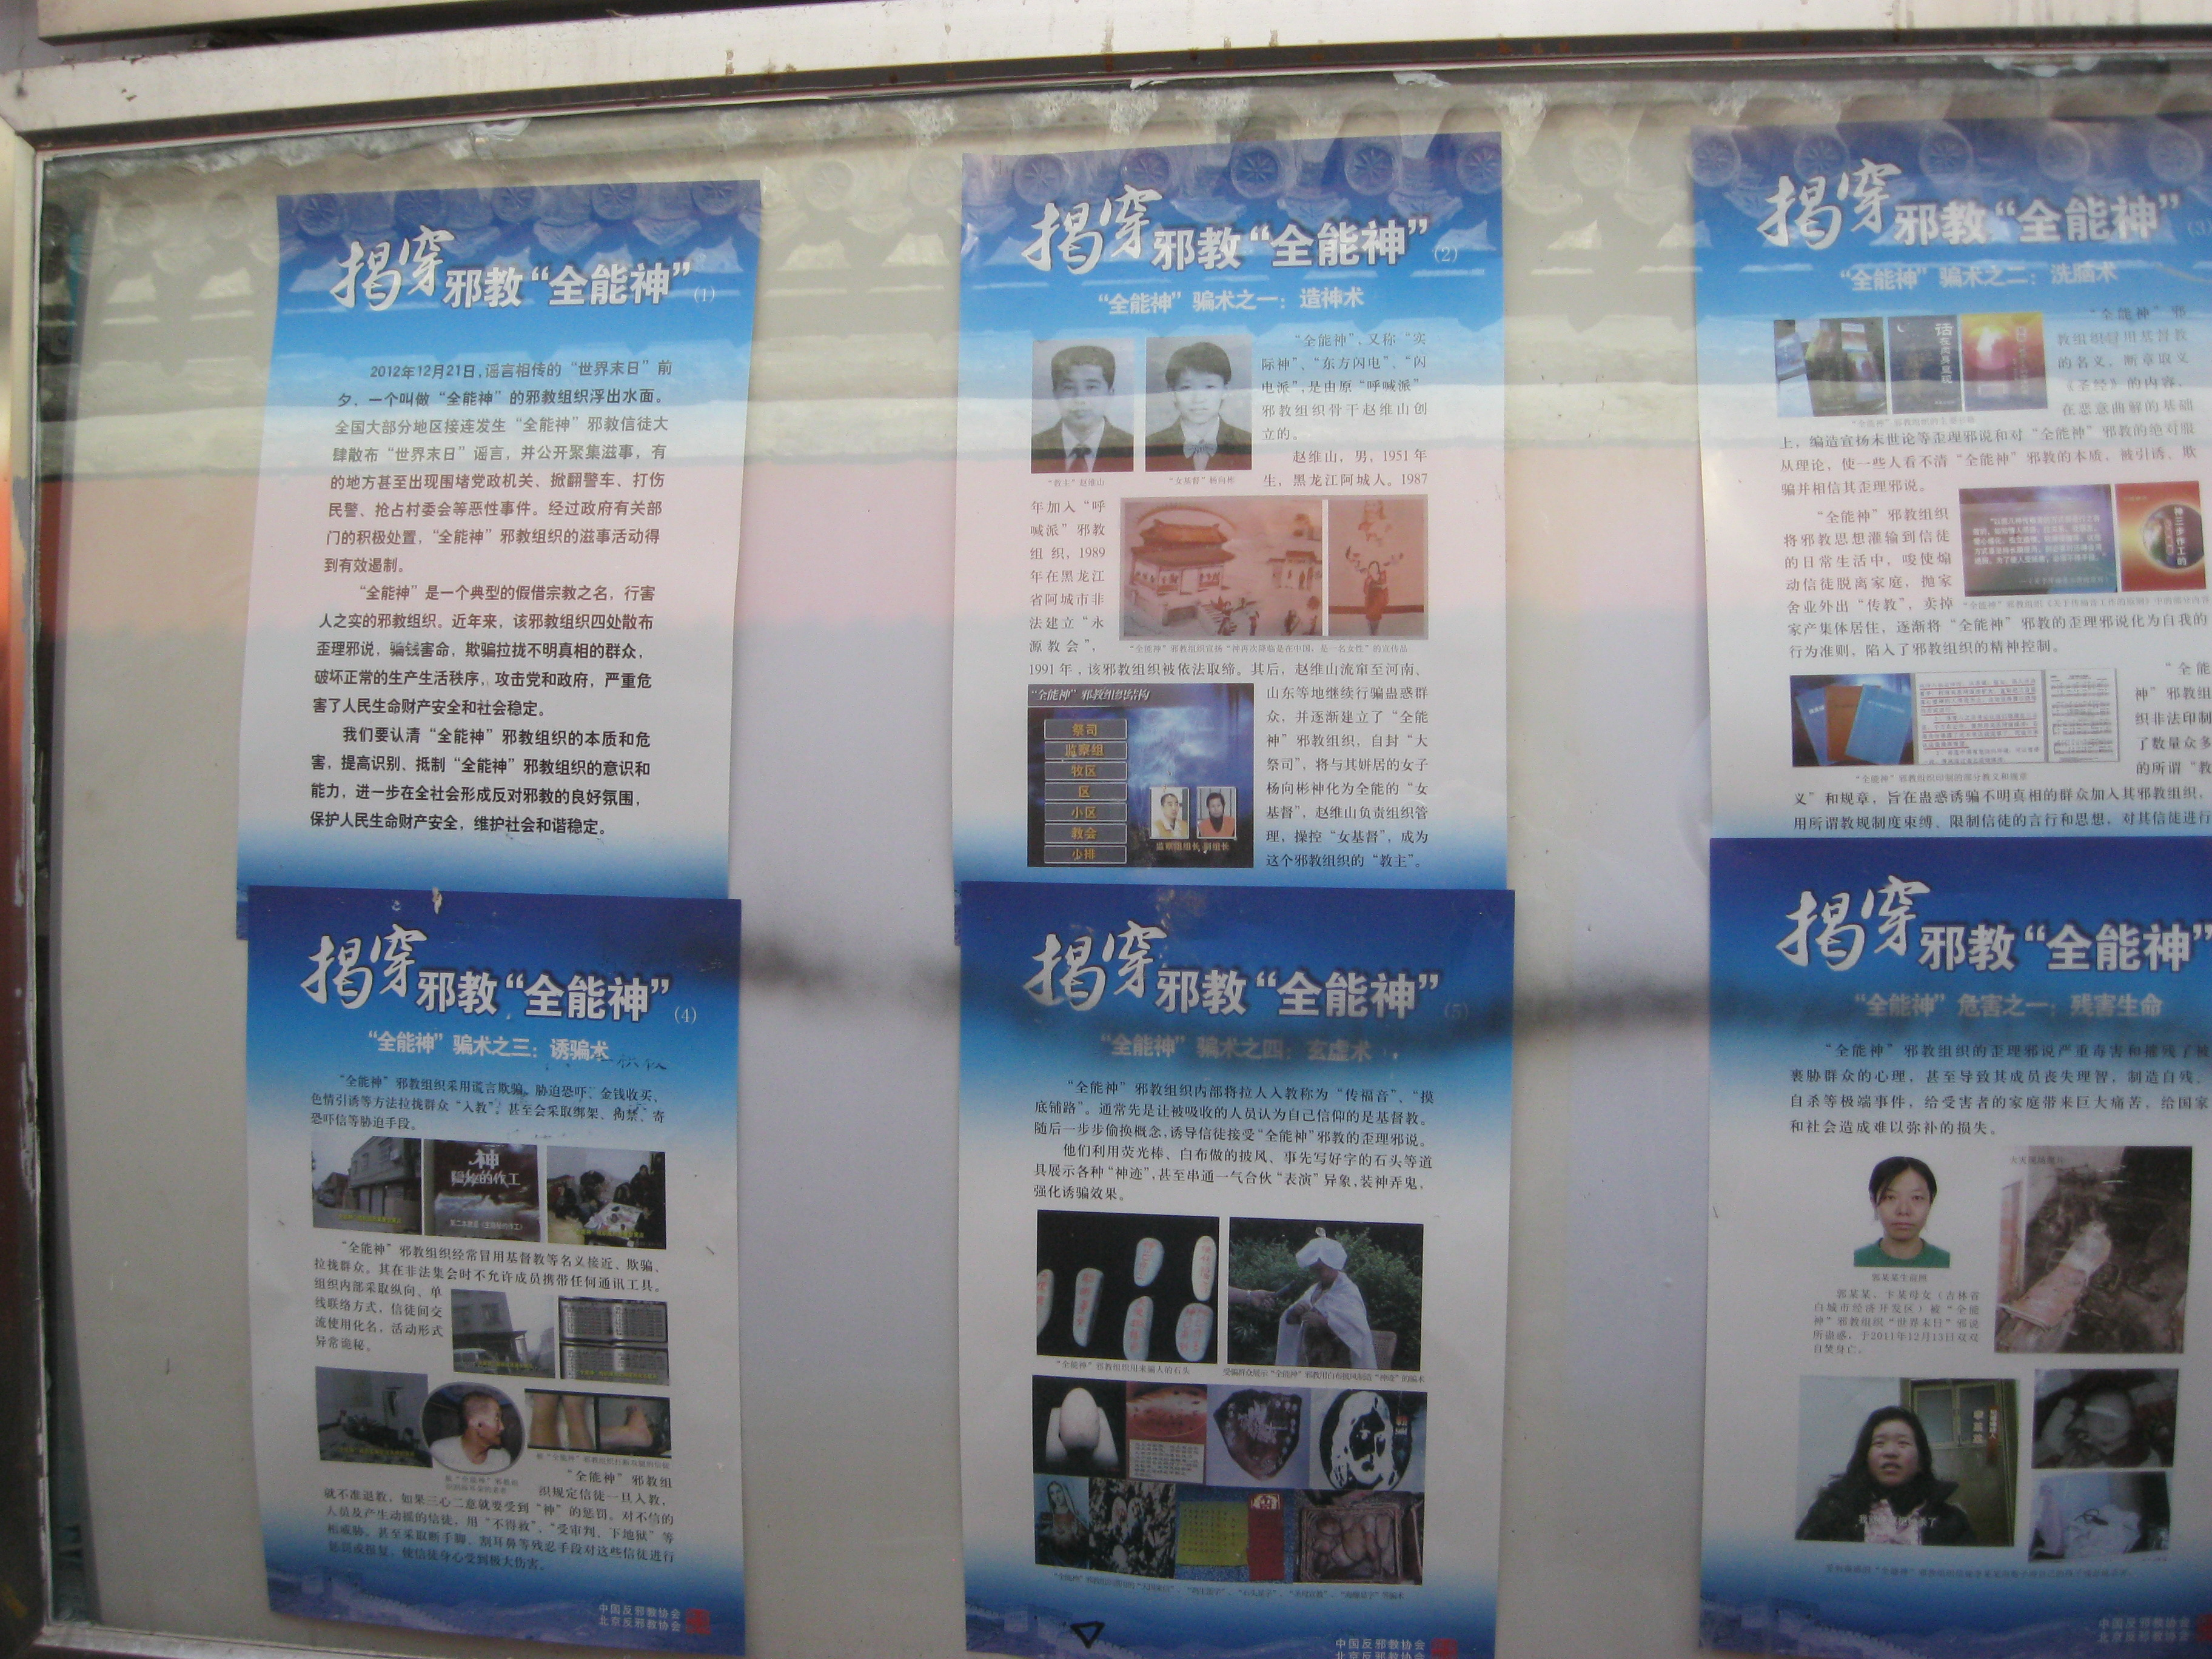 Church of Almighty God in China - Religion oder Sekte?